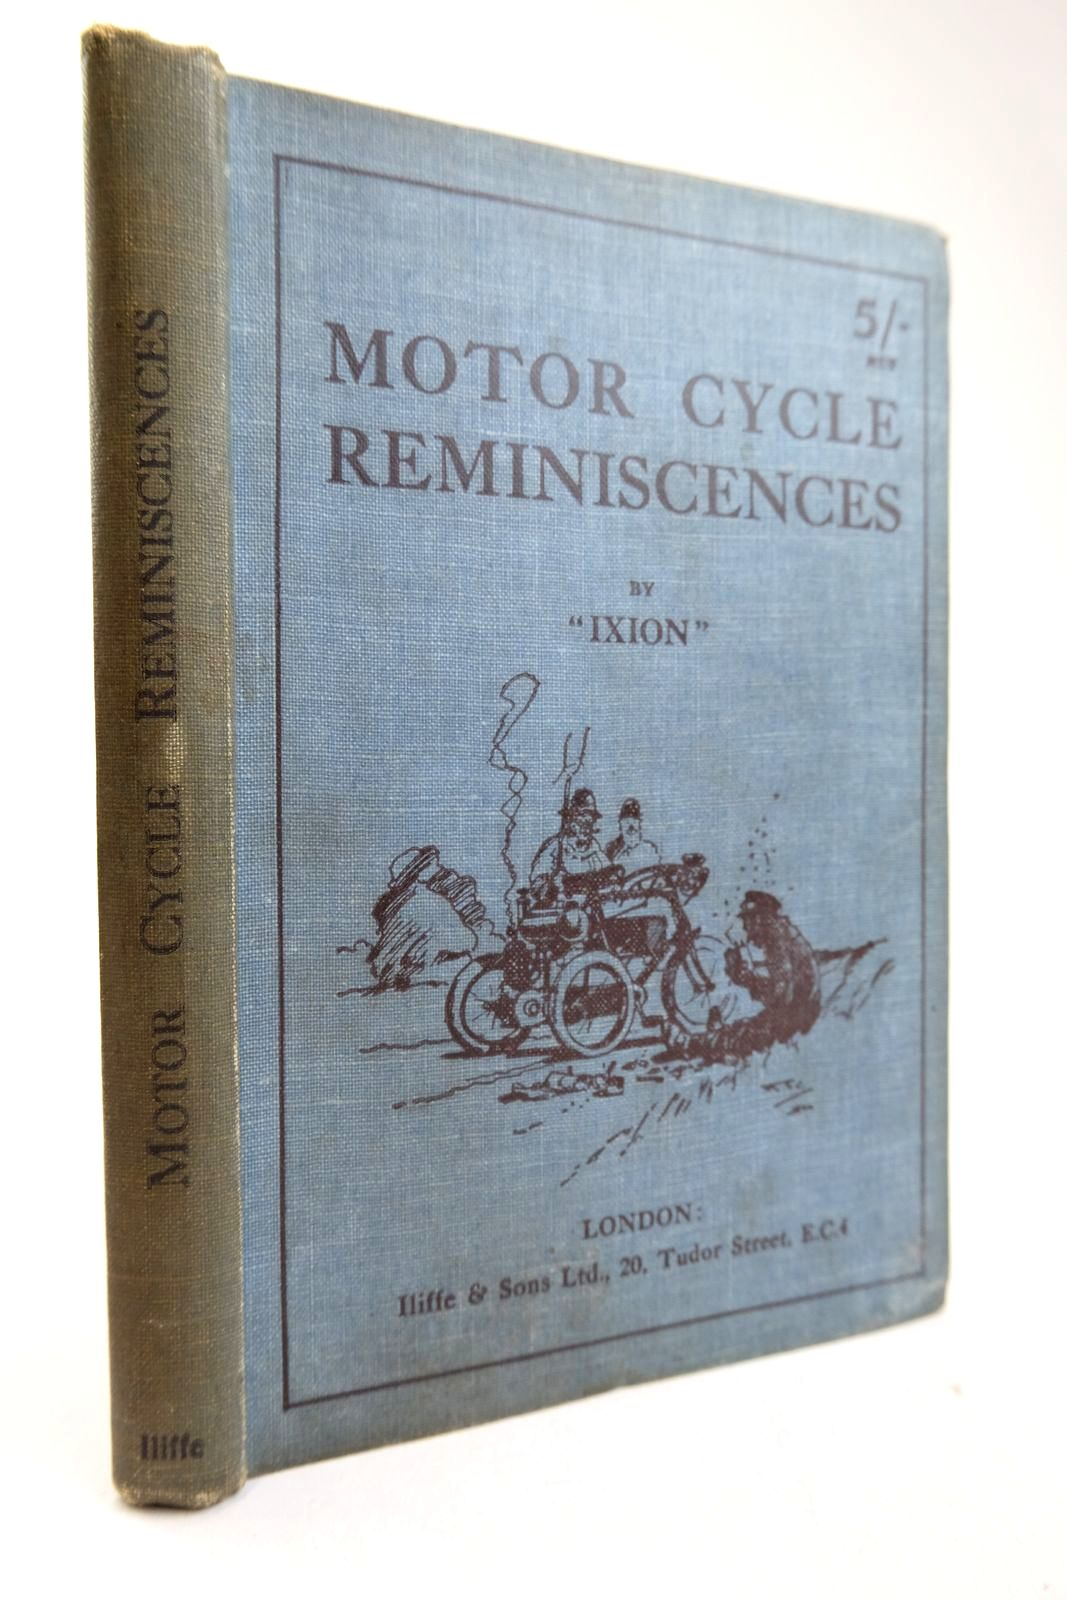 Photo of MOTOR CYCLE REMINISCENCES- Stock Number: 2133362